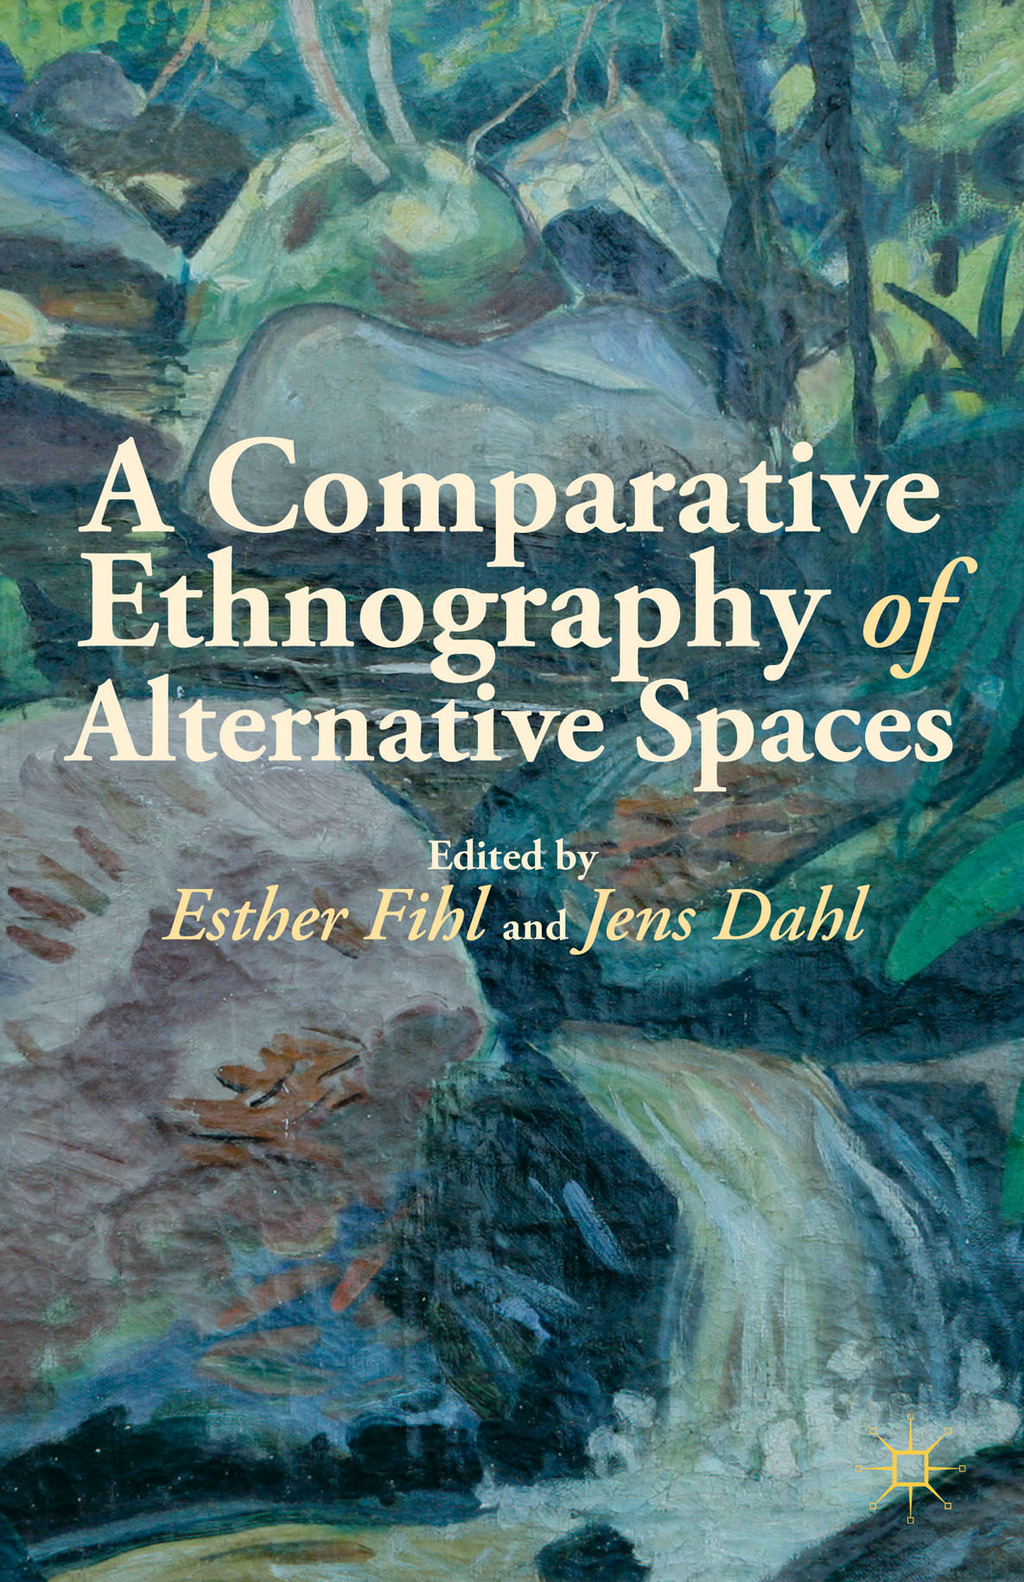 A Comparative Ethnography of Alternative Spaces